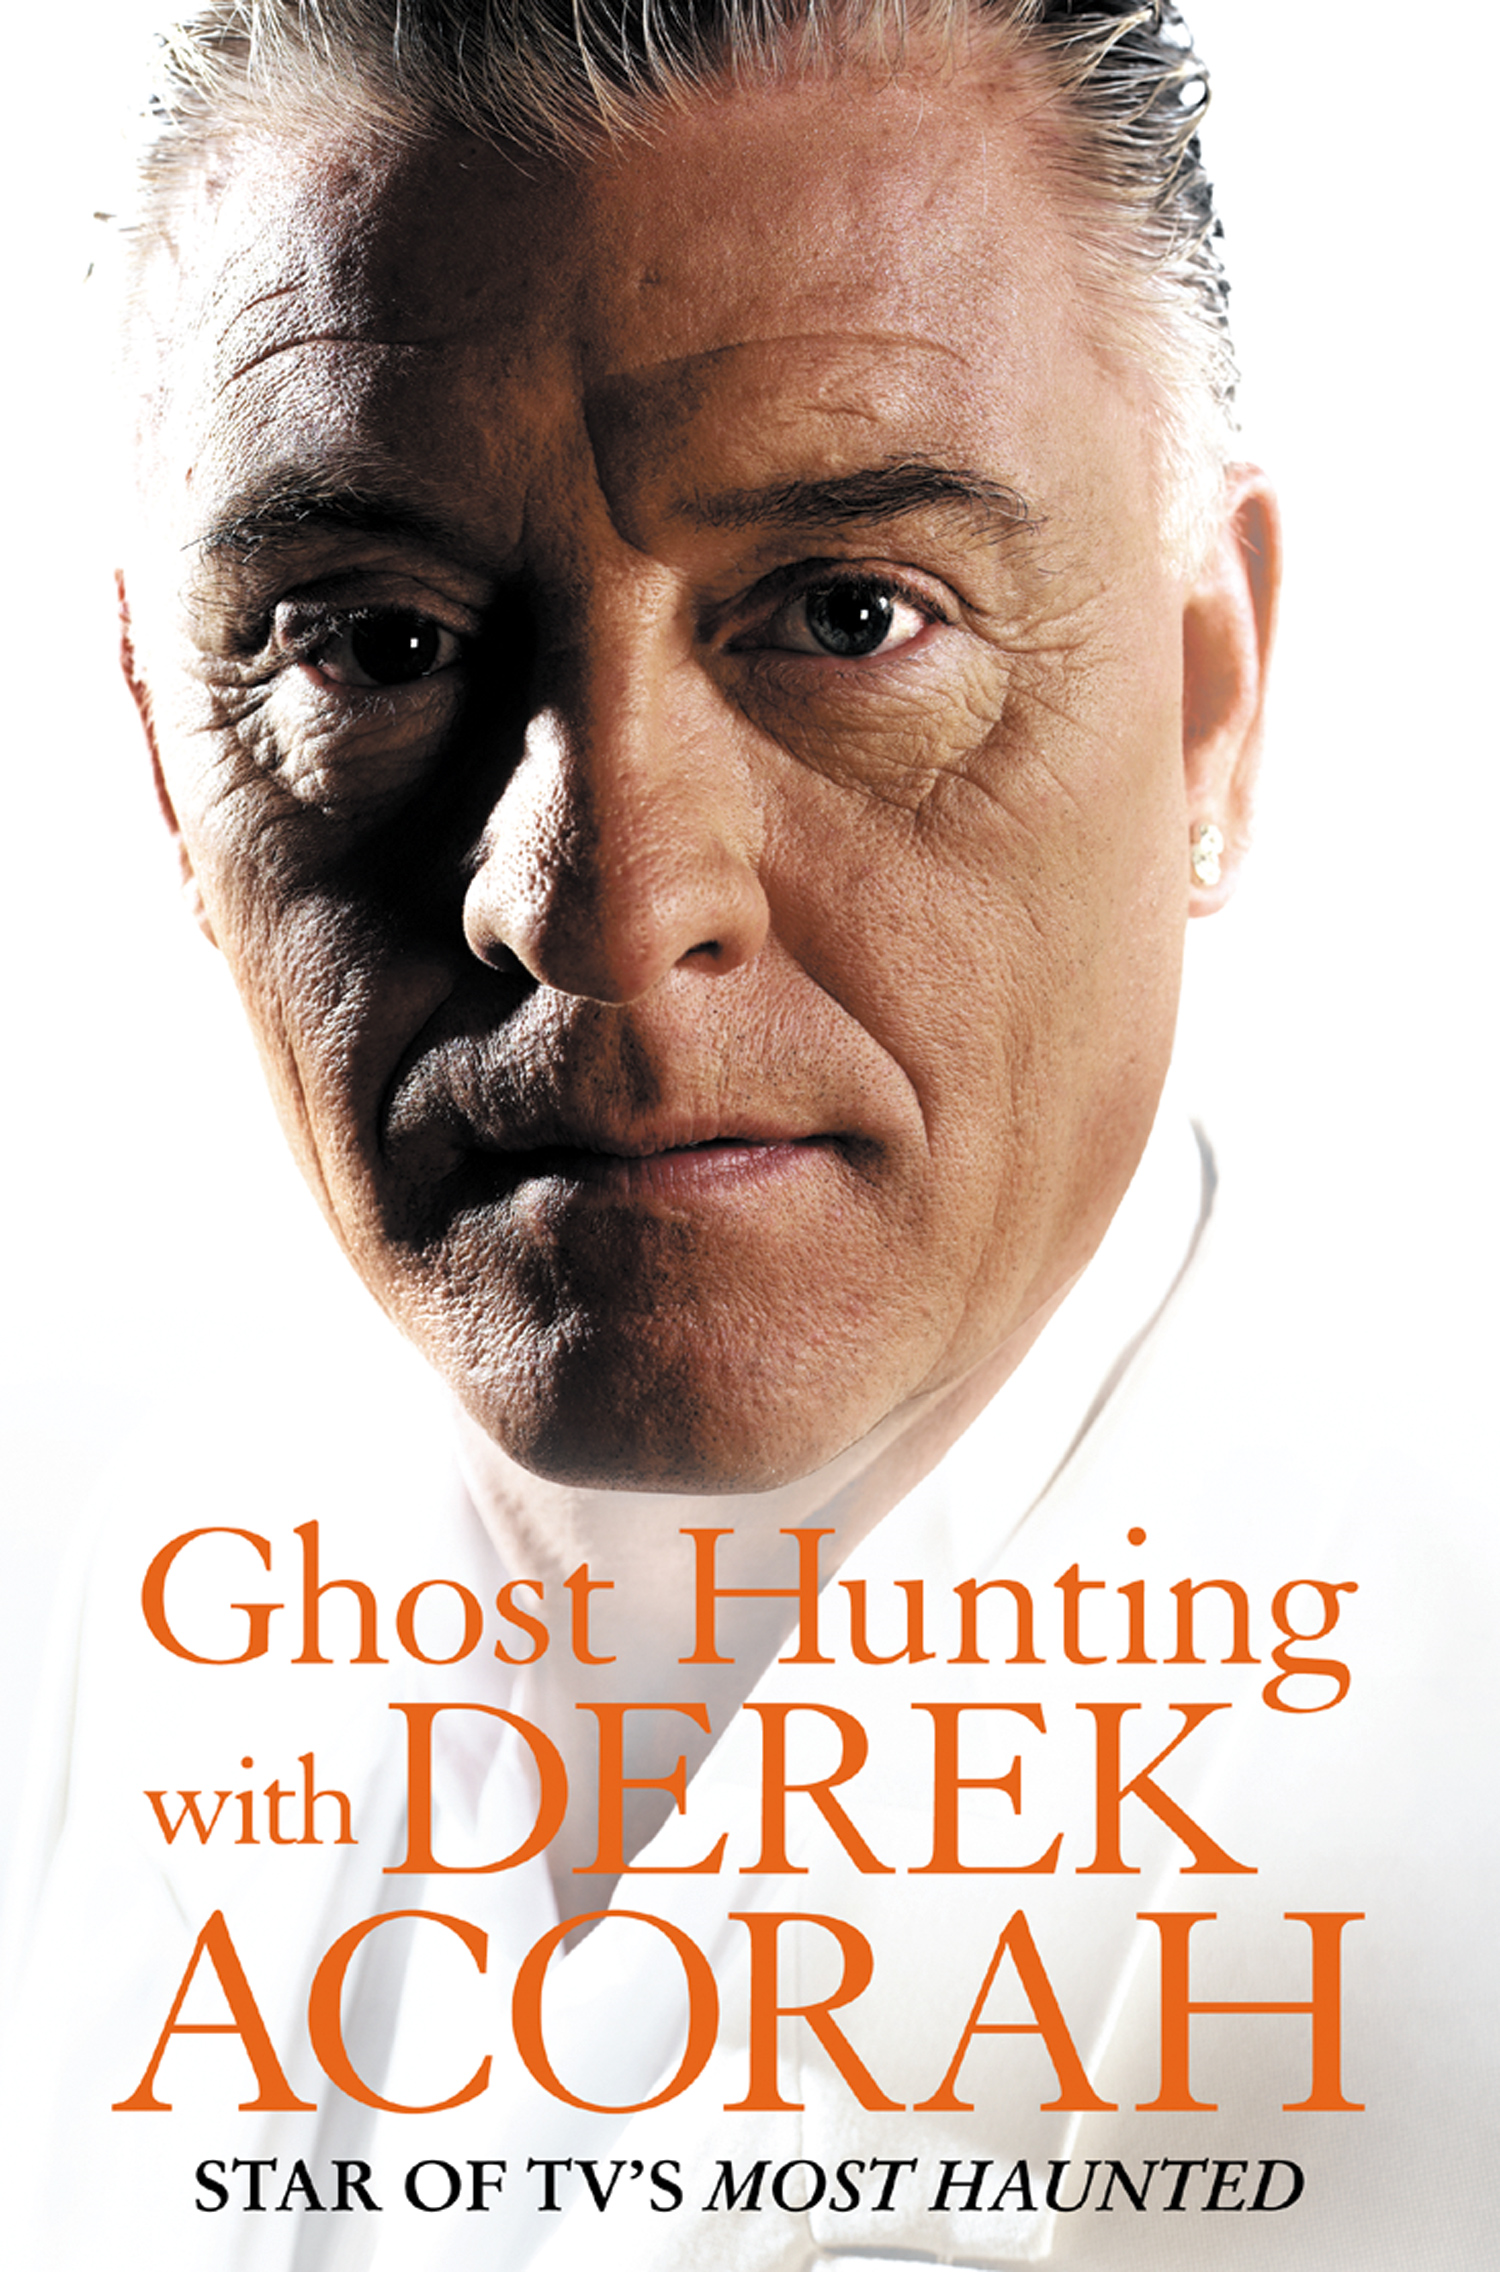 Ghost Hunting with Derek Acorah